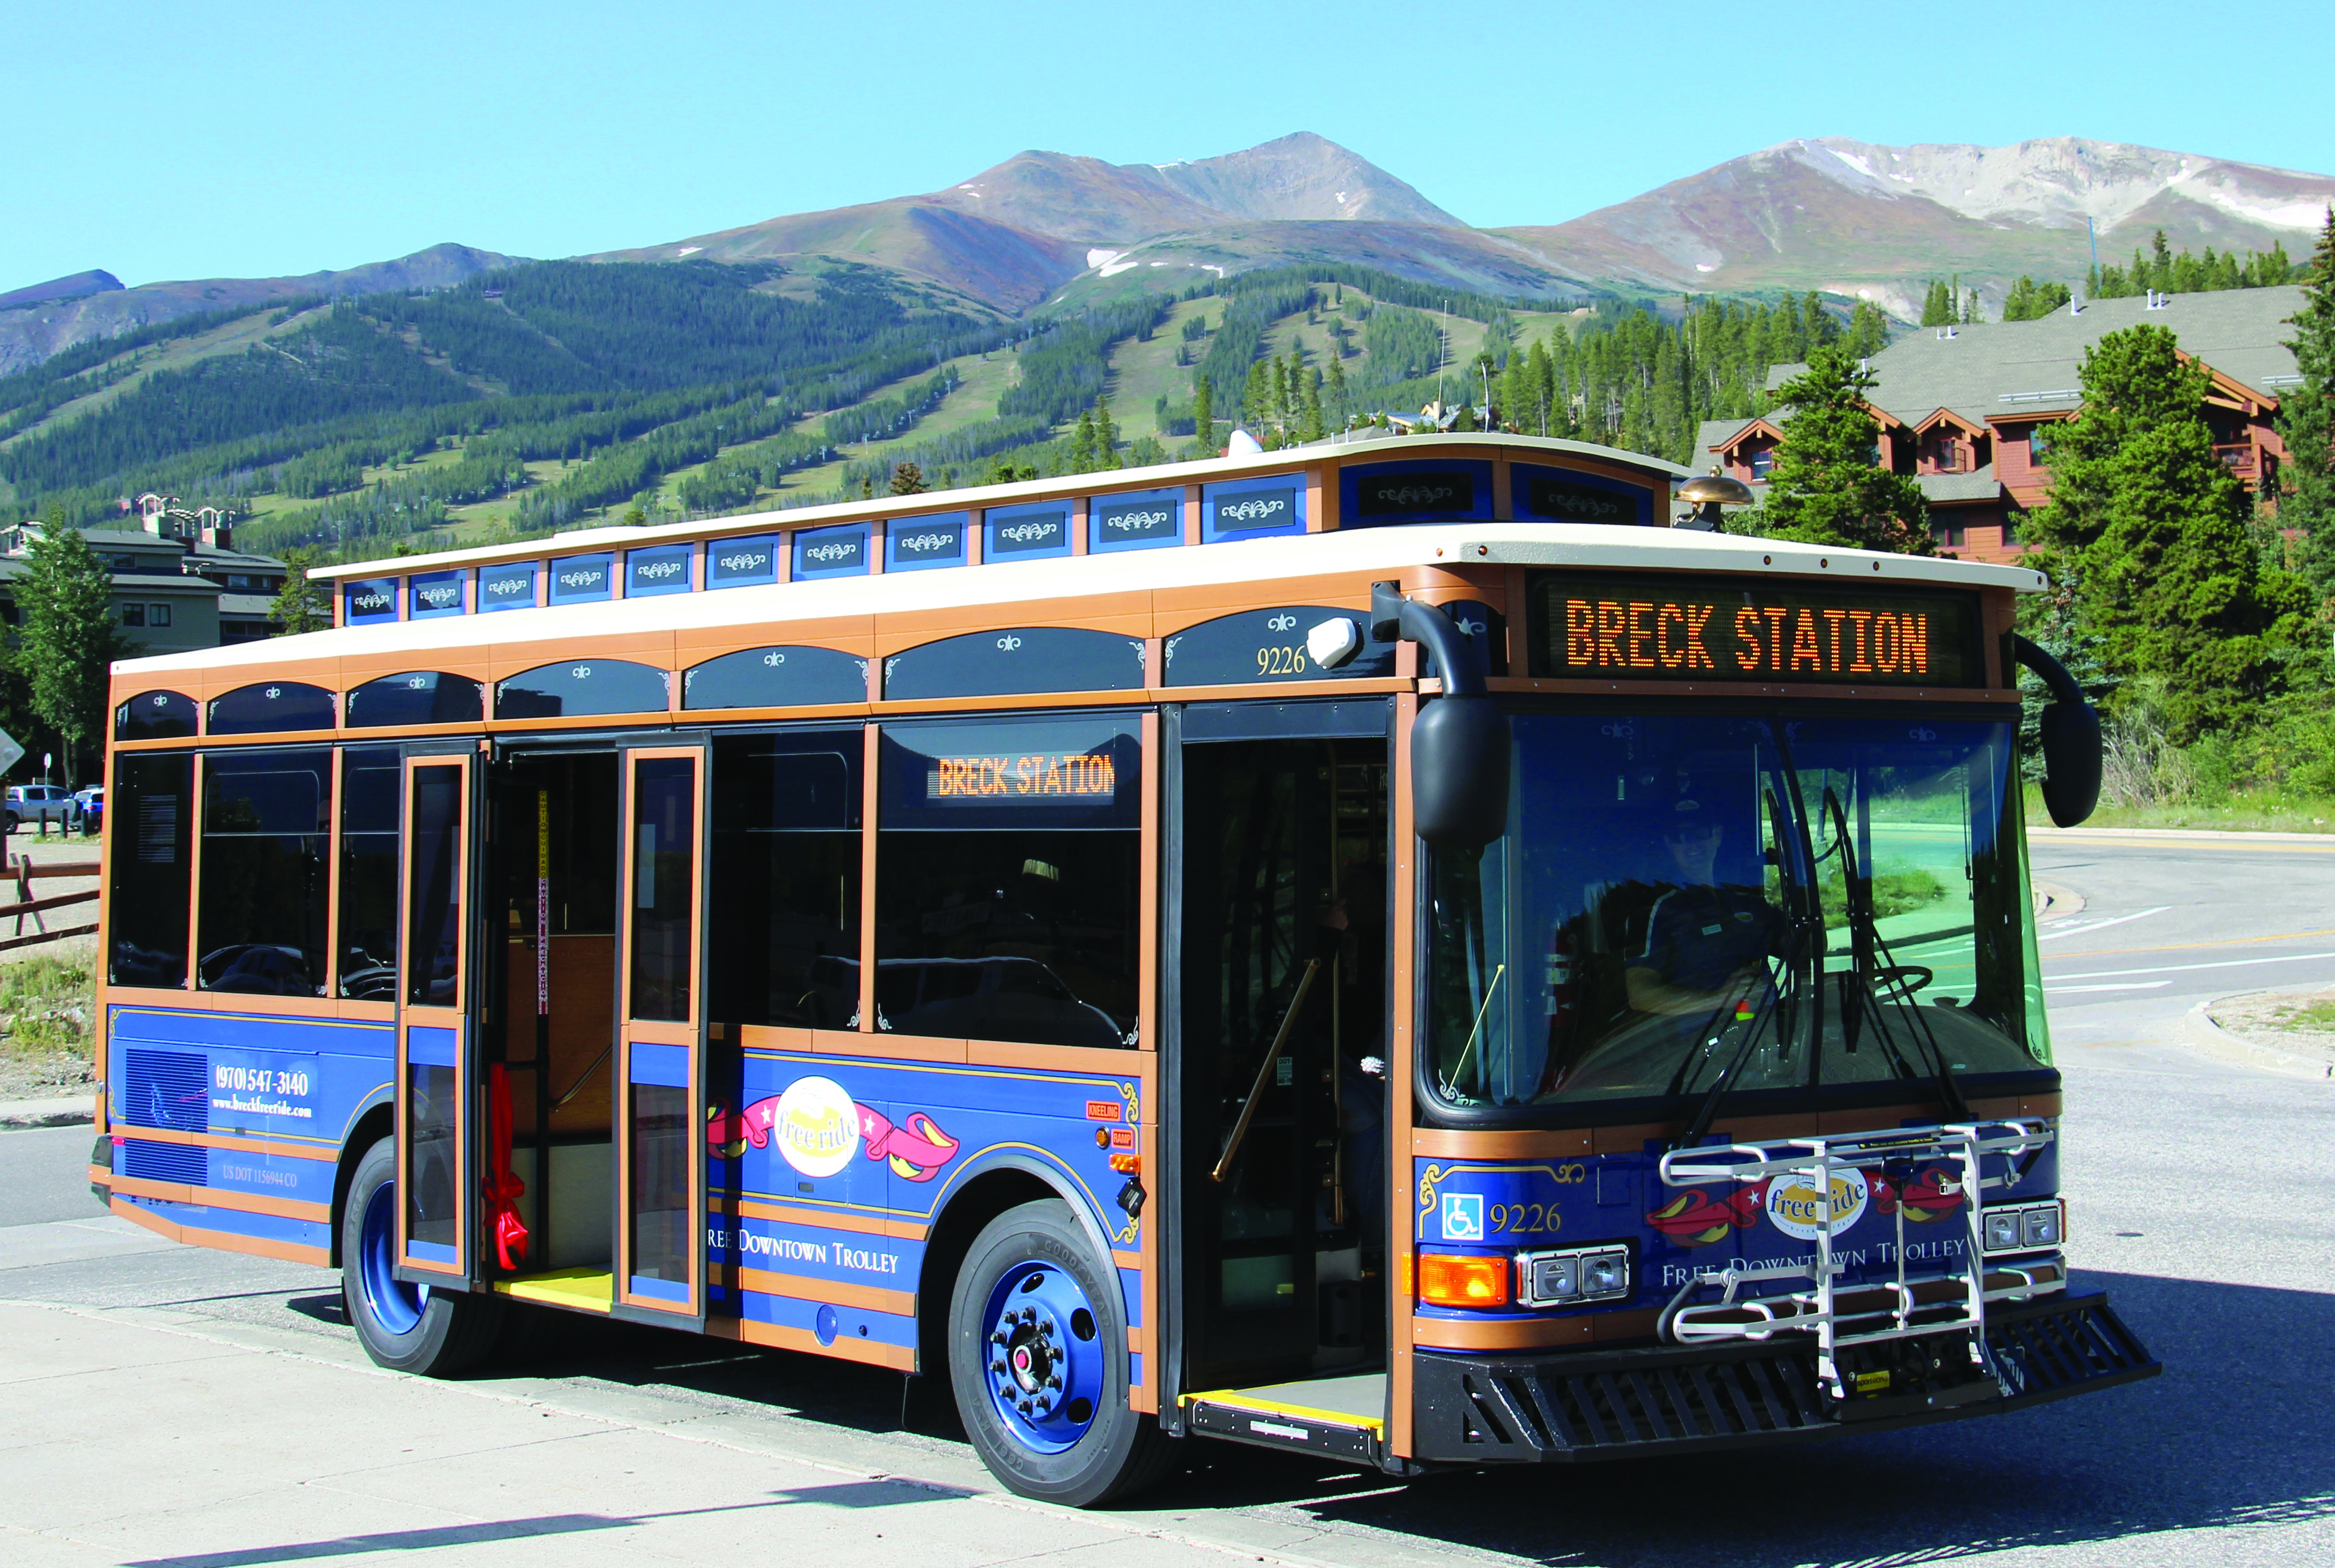 Take the bus, reuse your bags for a healthier Breckenridge (sponsored)